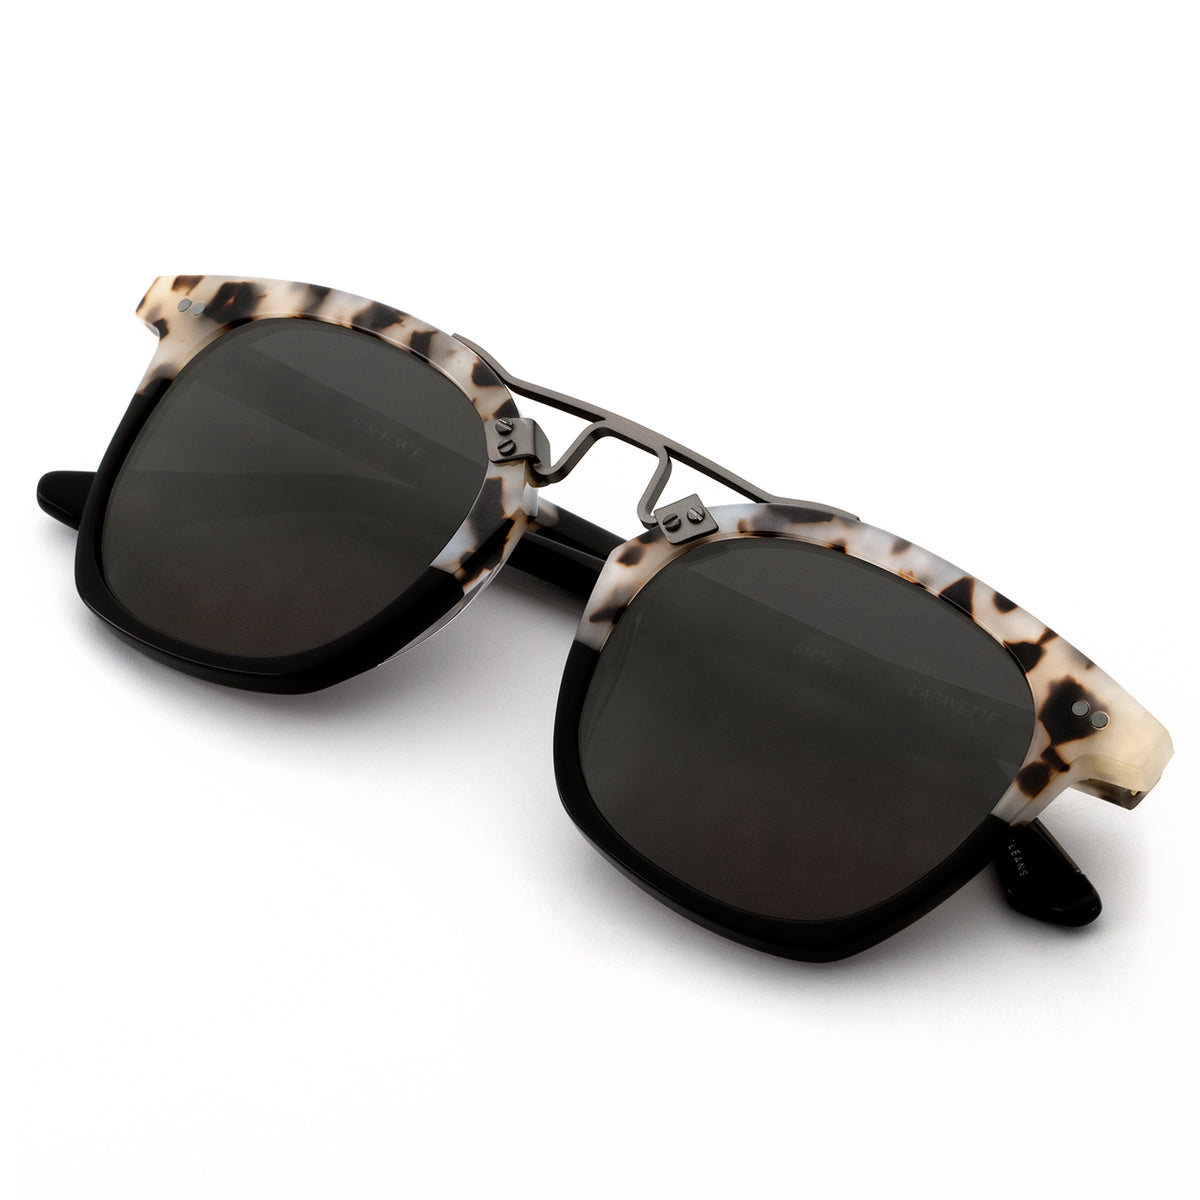 LAFAYETTE | Oyster to Black handcrafted acetate sunglasses